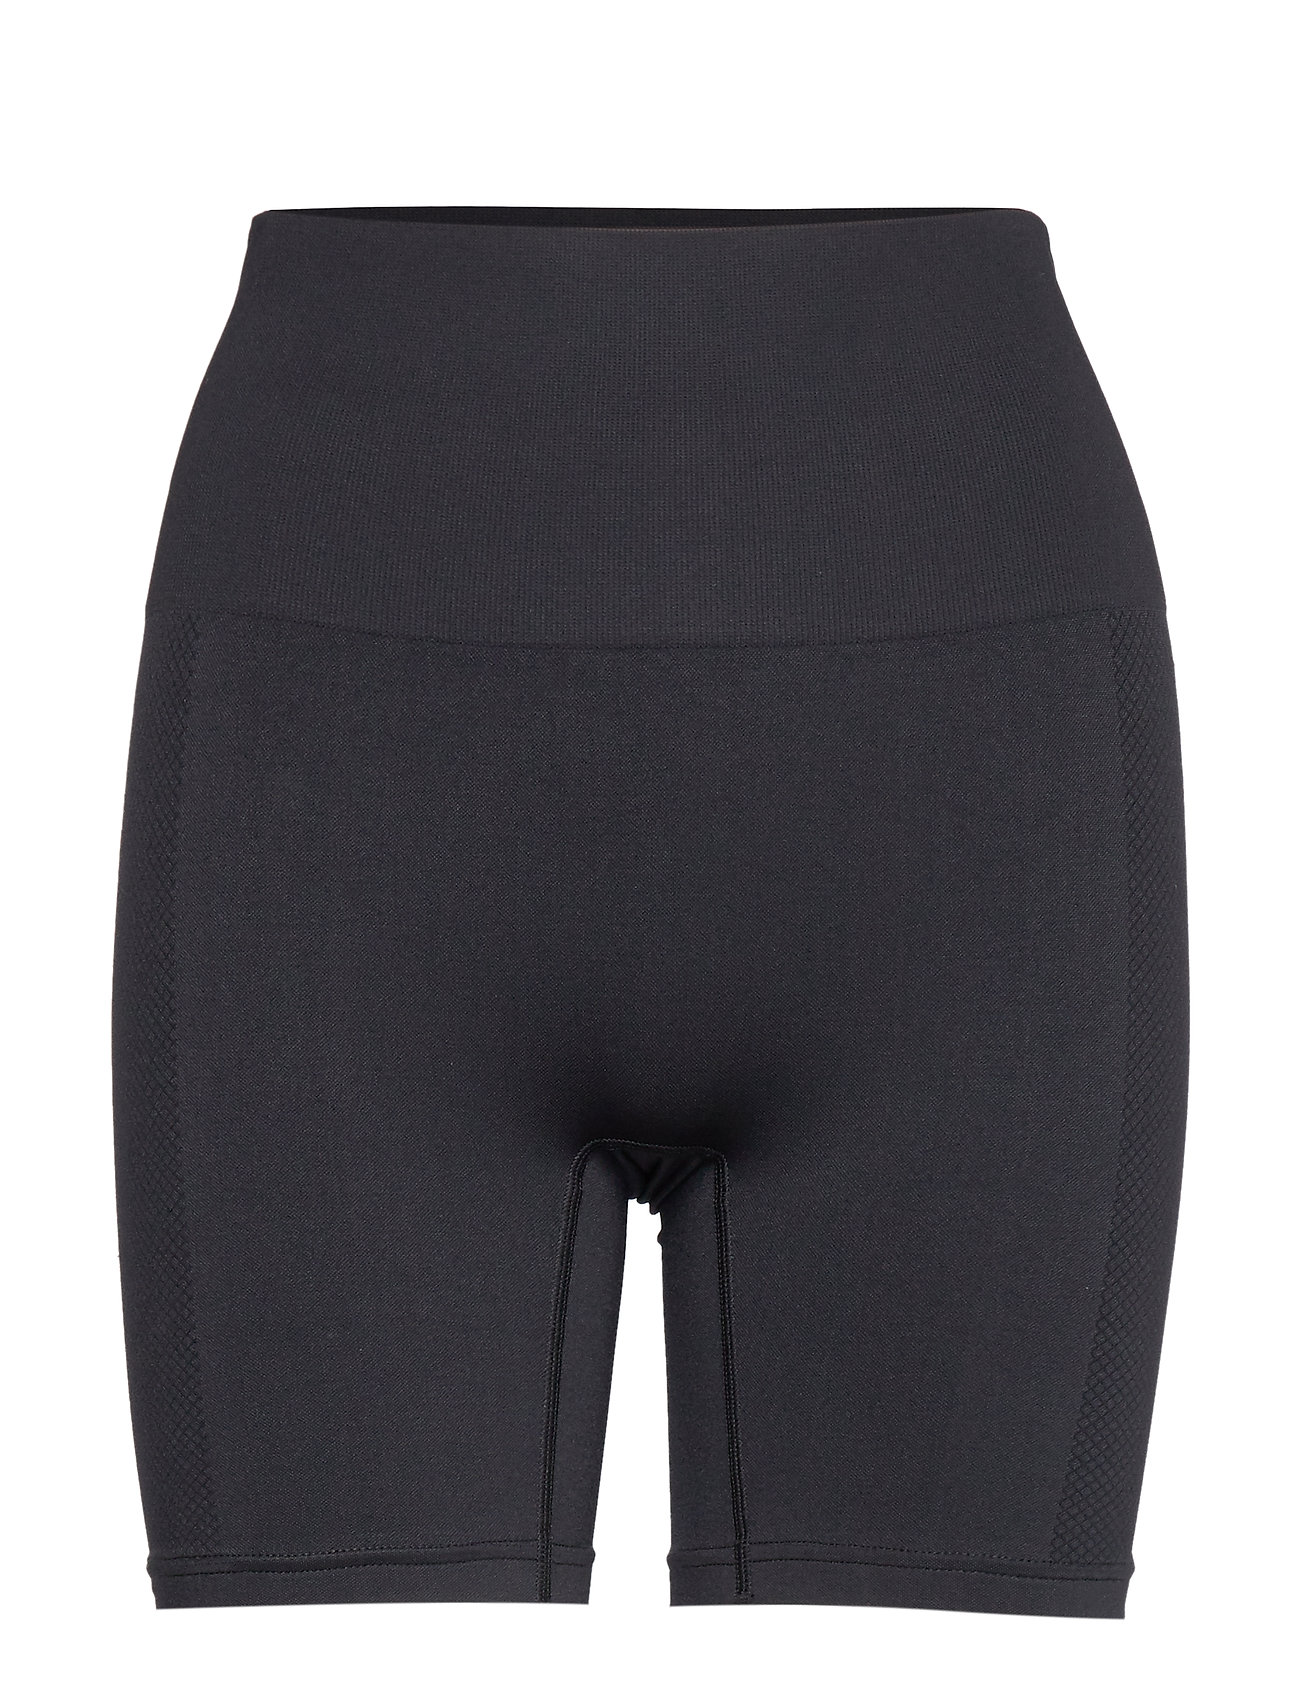 Seamless In Biker Biker TightsblackStay Seamless Place In TightsblackStay Place LSVjUMqzpG